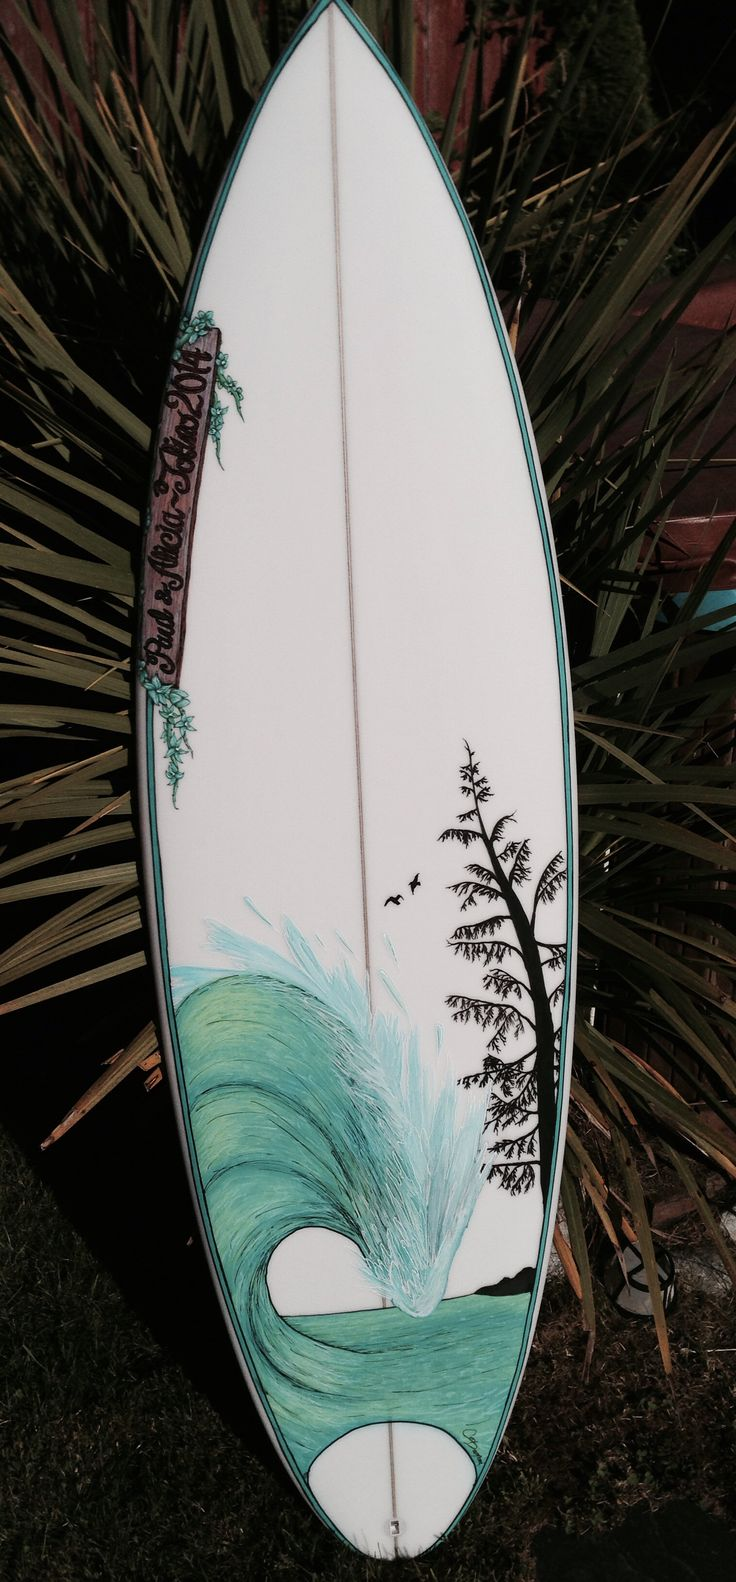 Travel to Lapoint Surf Camp Ericeira and get a taste of this fisherman's village on the Atlantic coast, home to world class waves and great people. Surfboard Painting, Surfboard Art, Surfboard Shapes, Art Football, Football Boots, Football Players, Tenacious D, Skateboard Art, Summer Surf